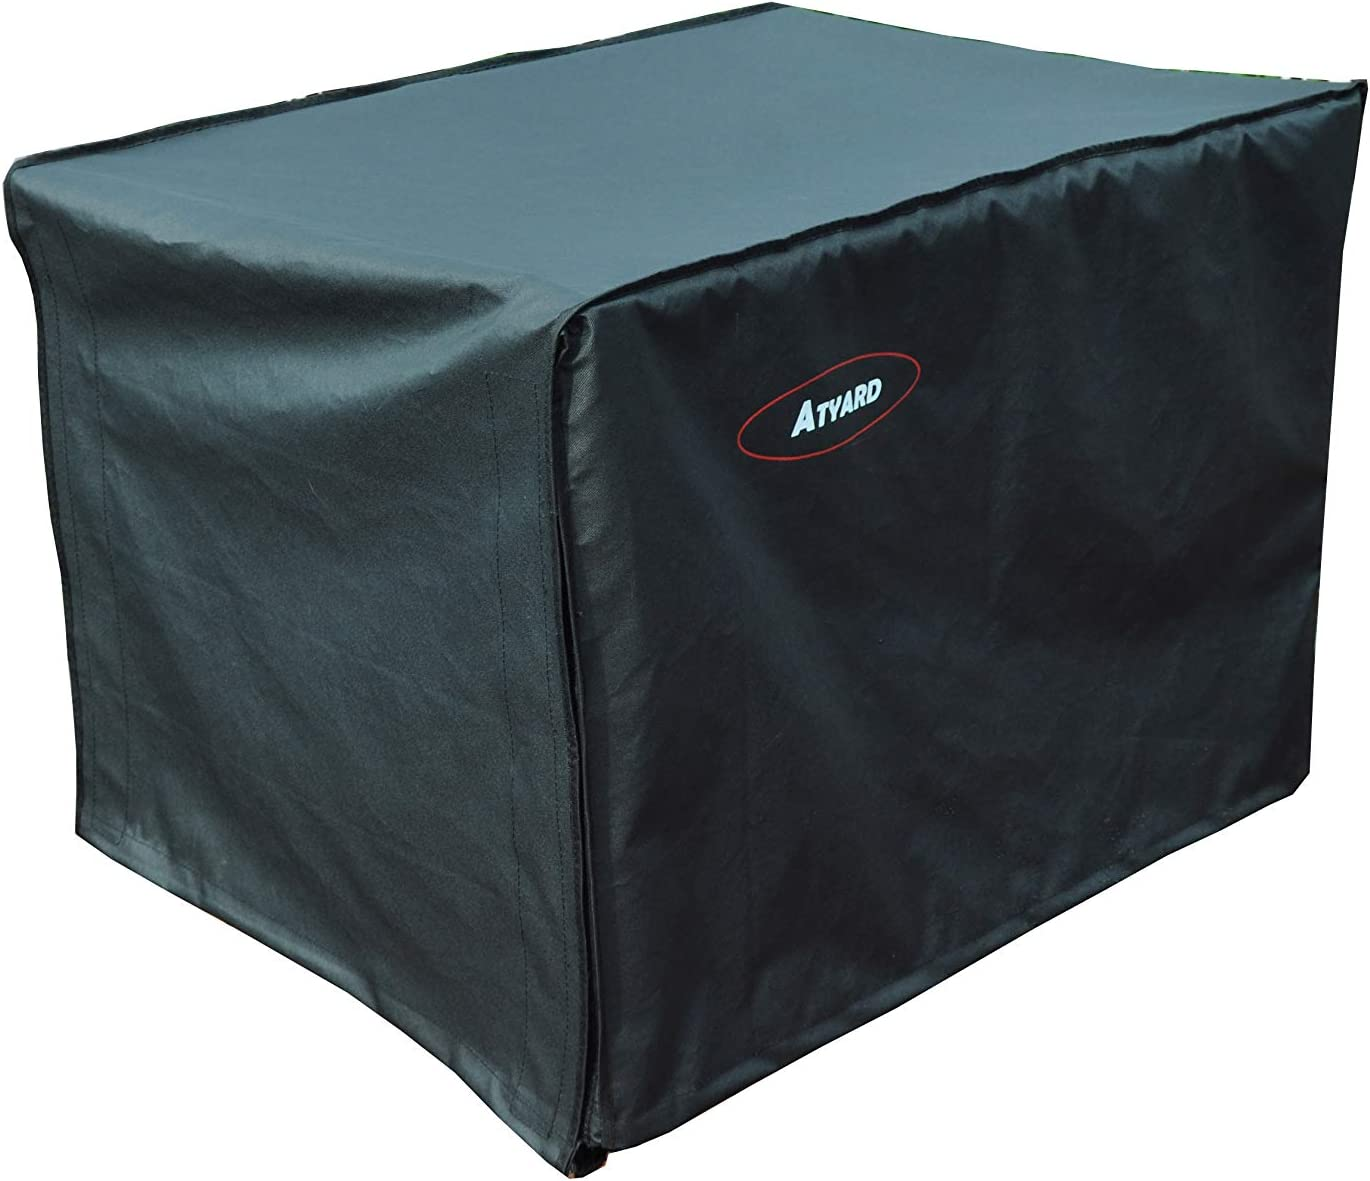 """ATYARD 30-inch Outdoor Cover for Keter Unity (Small) Portable Table - UV Resistant, Breathable, All Weather (30"""" L x 24"""" W x 32"""" H)"""